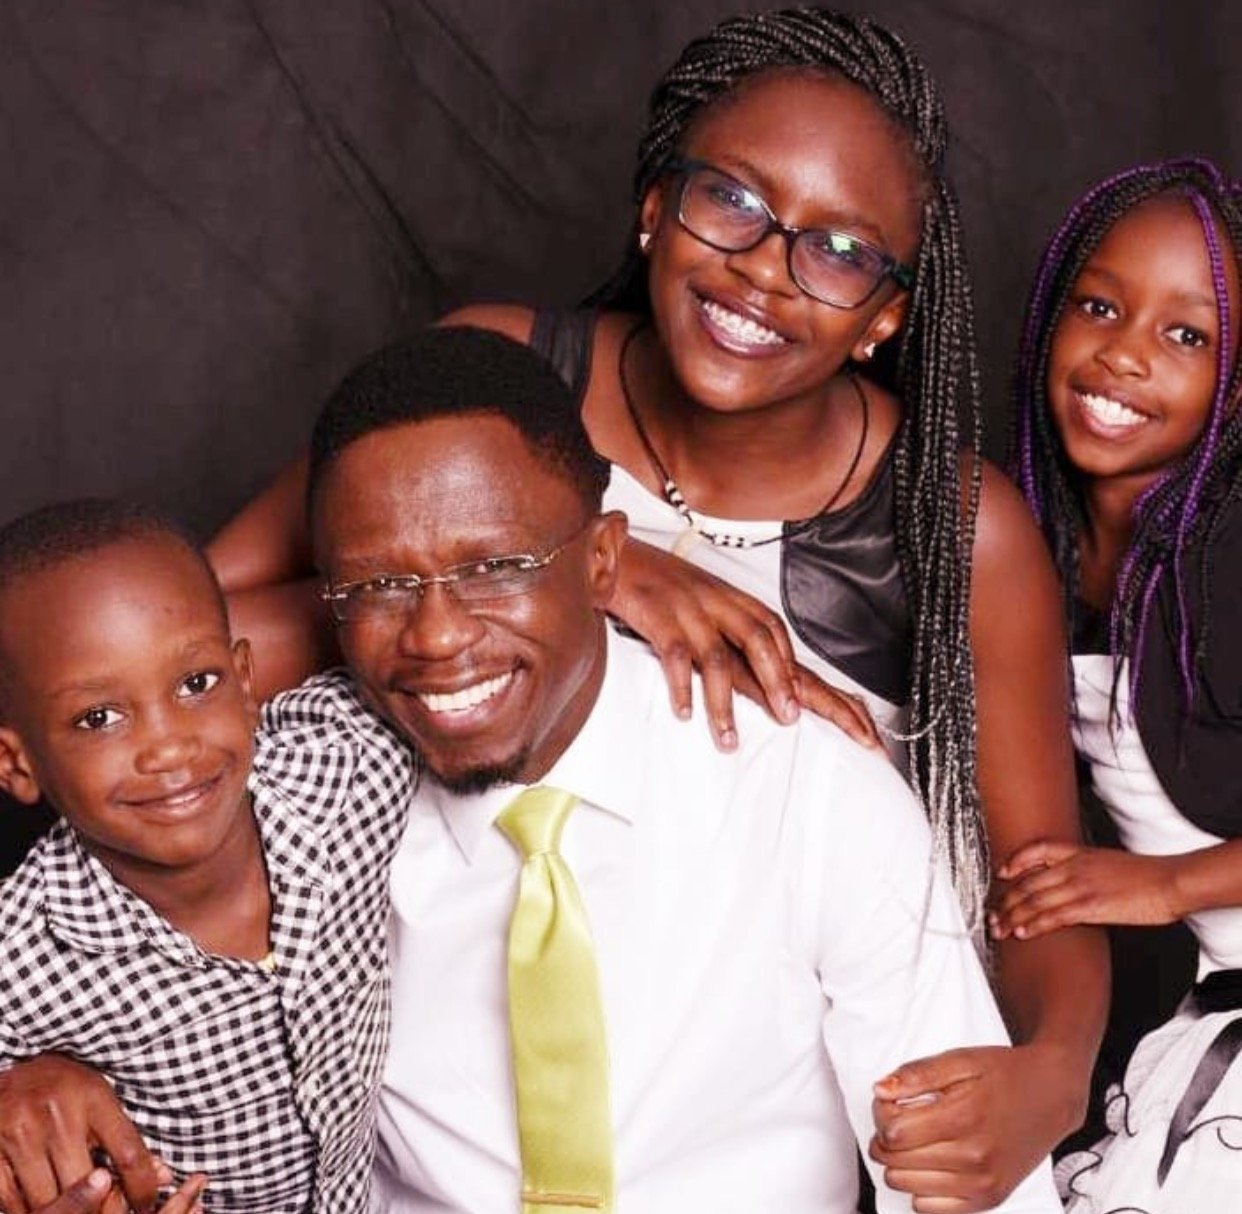 Daddy goals! Adorable photos of Ababu Namwamba spending quality time with his kids